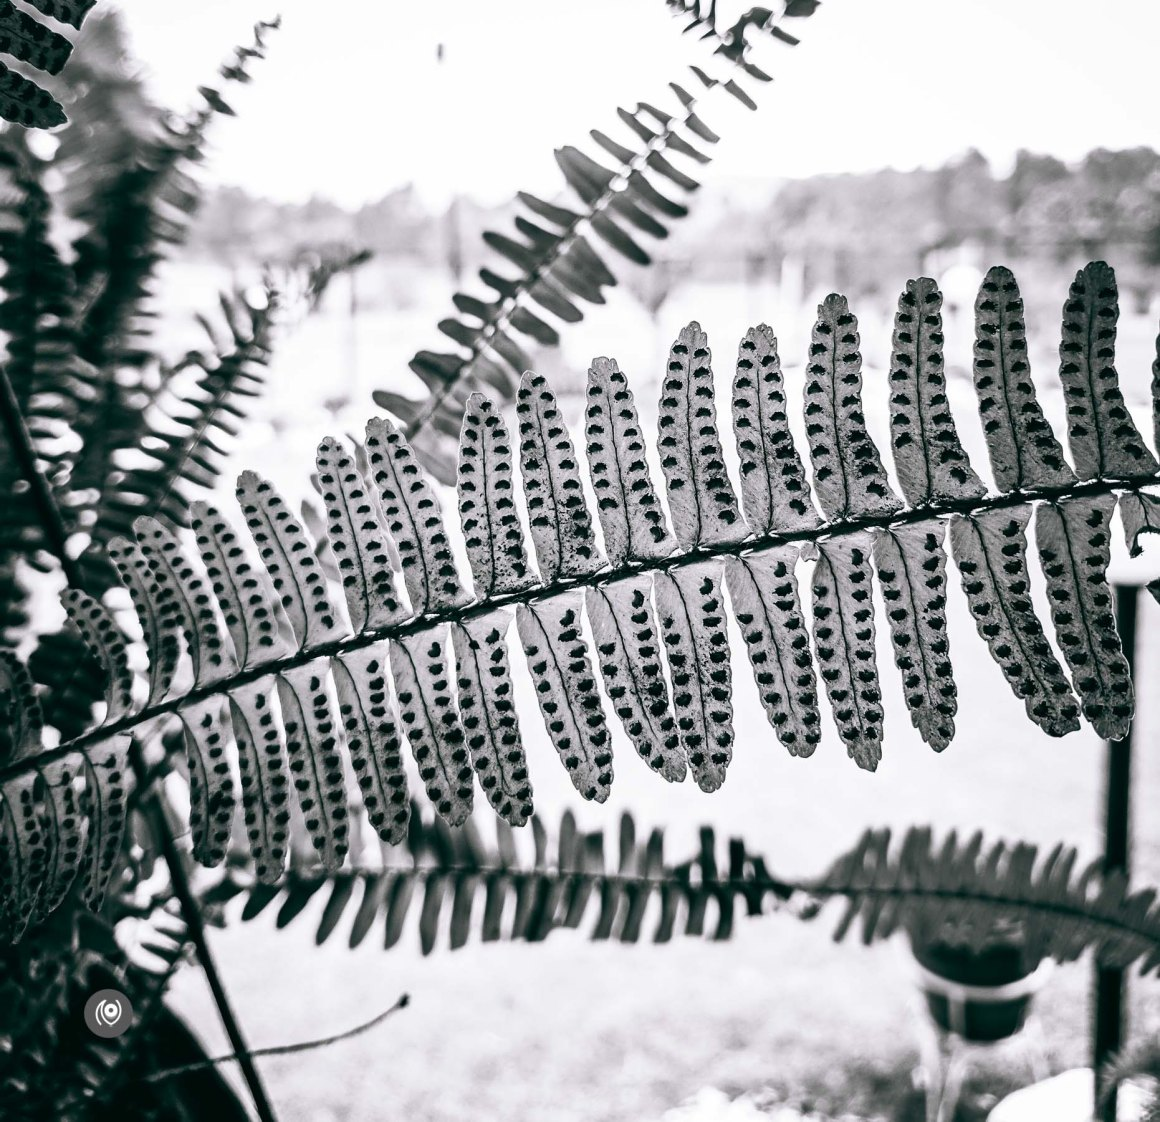 Ranikhet, Uttarakhand, EyesForDestinations, EyesForIndia, EyesForRanikhet, EyesForUttarakhand, NainaxRanikhet, Travel Photographer, Destination Photographer, Travel Photography, Destination Photography, Resort, Hospitality, Lifestyle, Travel Blogger, Lifestyle Blogger, Vacation, Road Trip, India, Professional Photographer, Luxury, Lifestyle, Blogger, Feature, Story, Golf Course